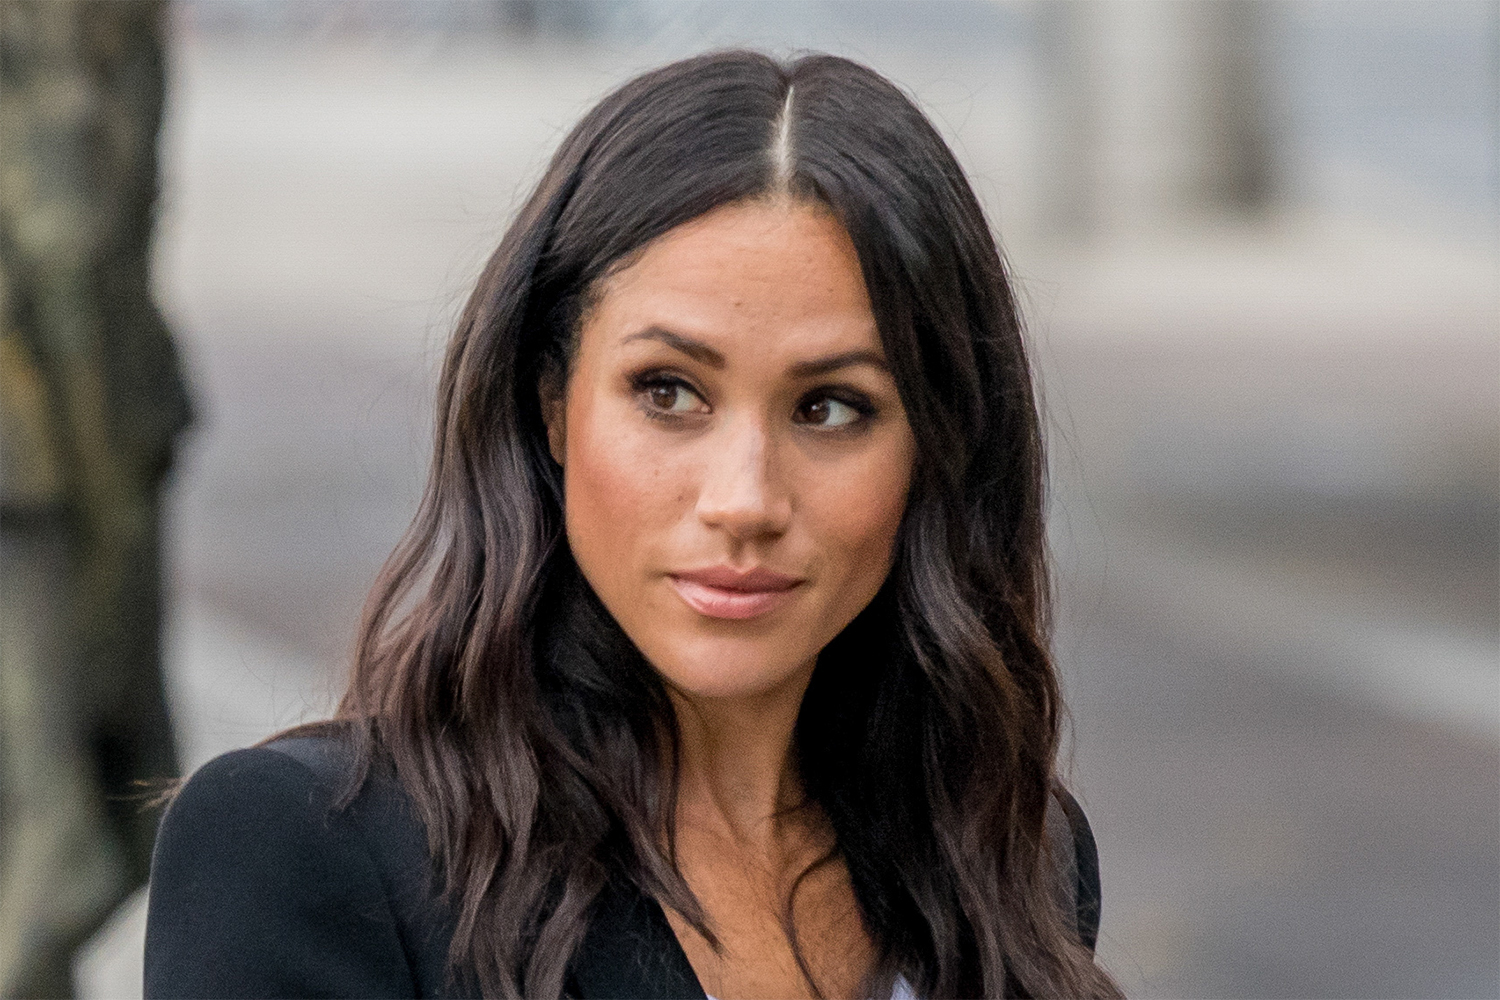 Meghan Markle reportedly finding LA lockdown 'incredibly hard'